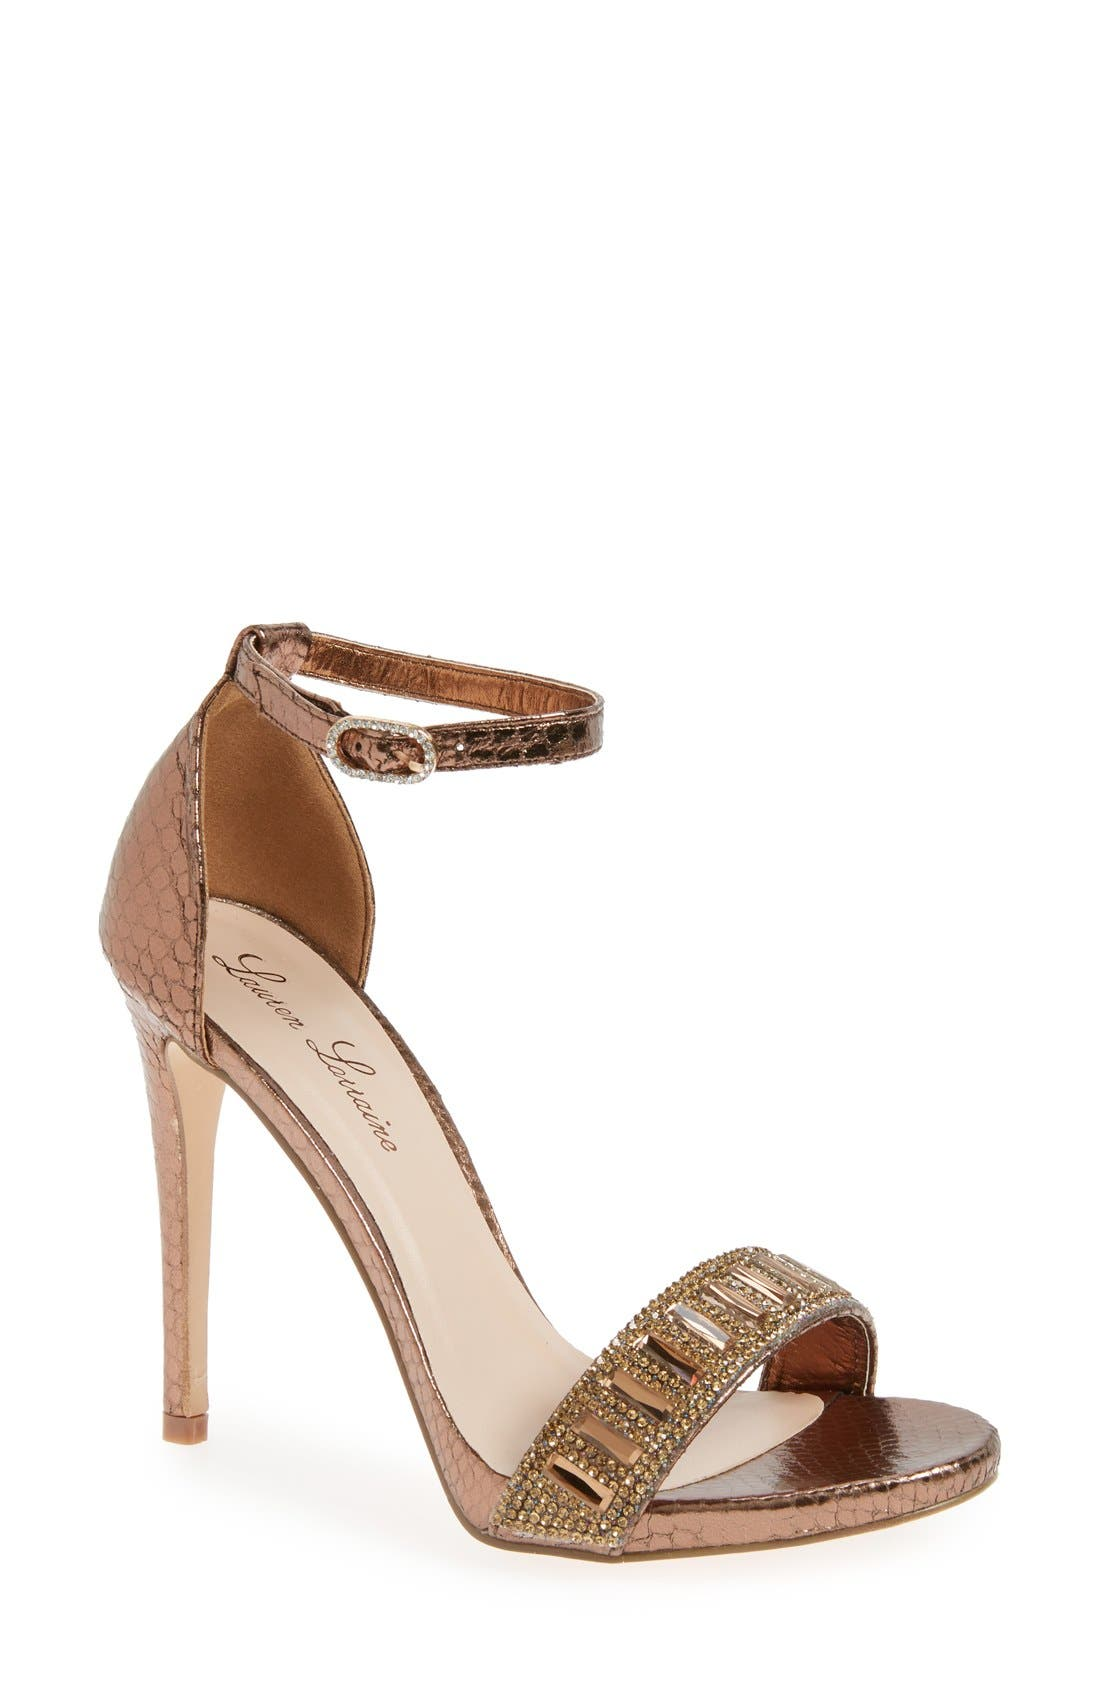 Alternate Image 1 Selected - Lauren Lorraine 'Ari' Sandal (Women)